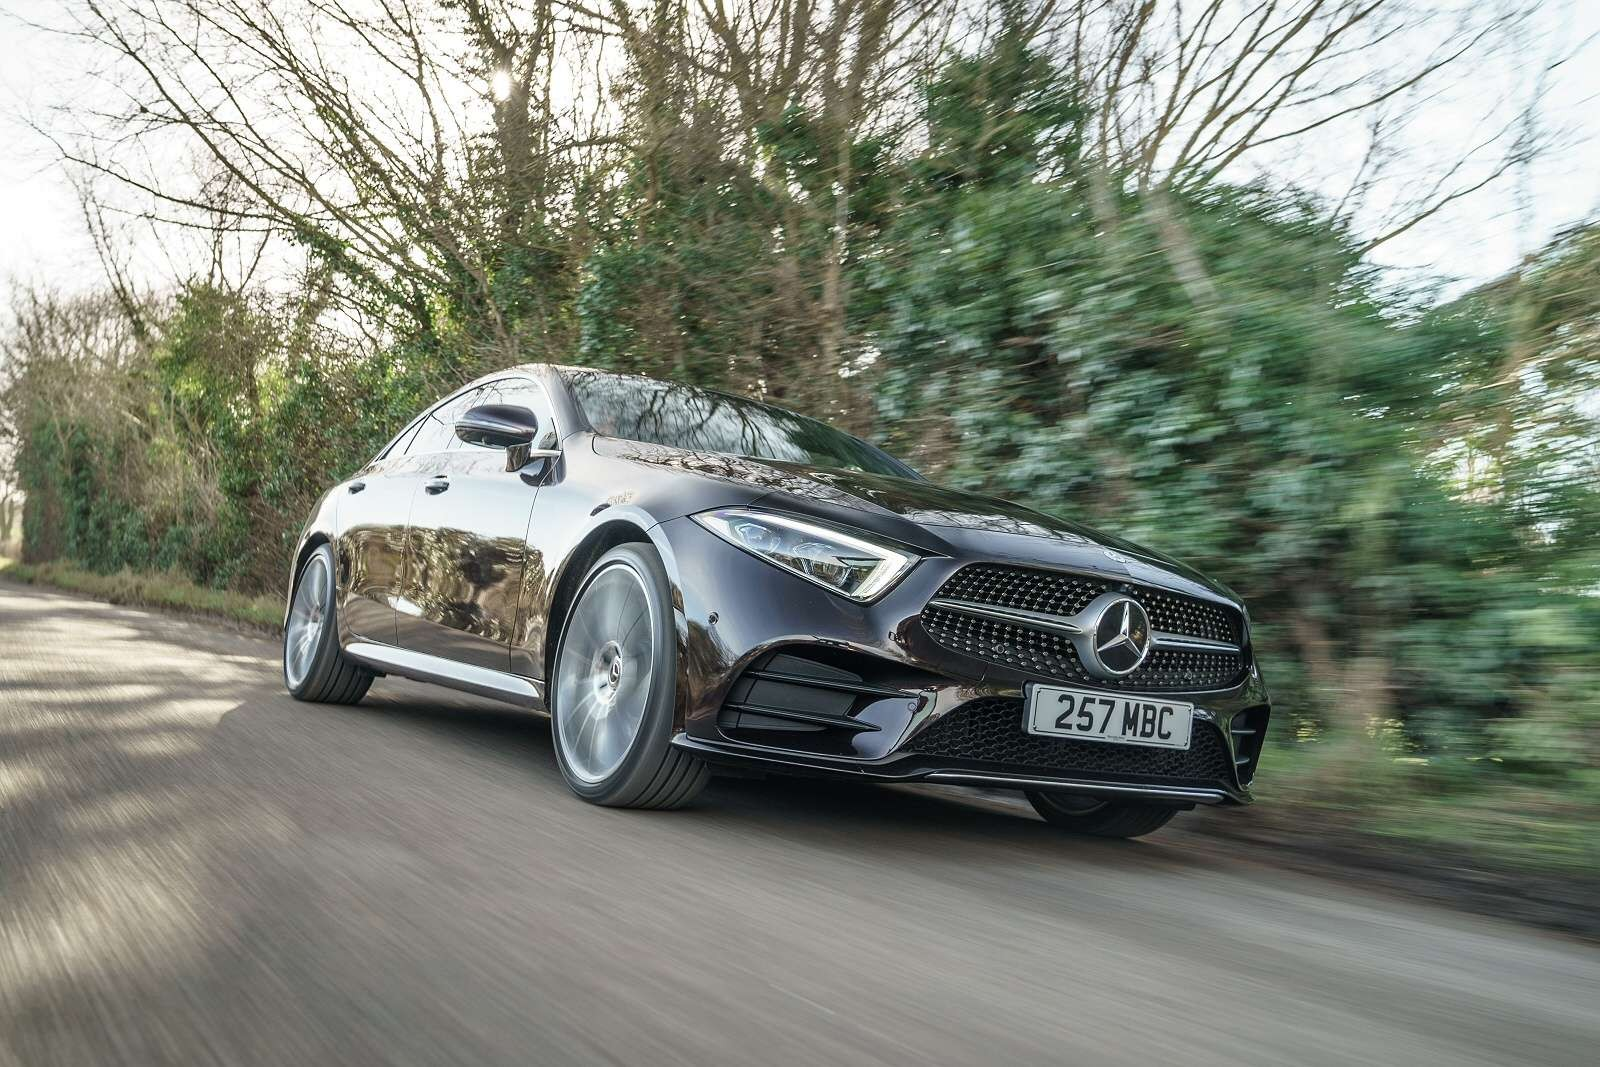 Mercedes CLS-Class Coupe CLS400d 2 9 AMG Line 9G-TRONIC 4MATIC Lease Deal |  Pink Car Leasing